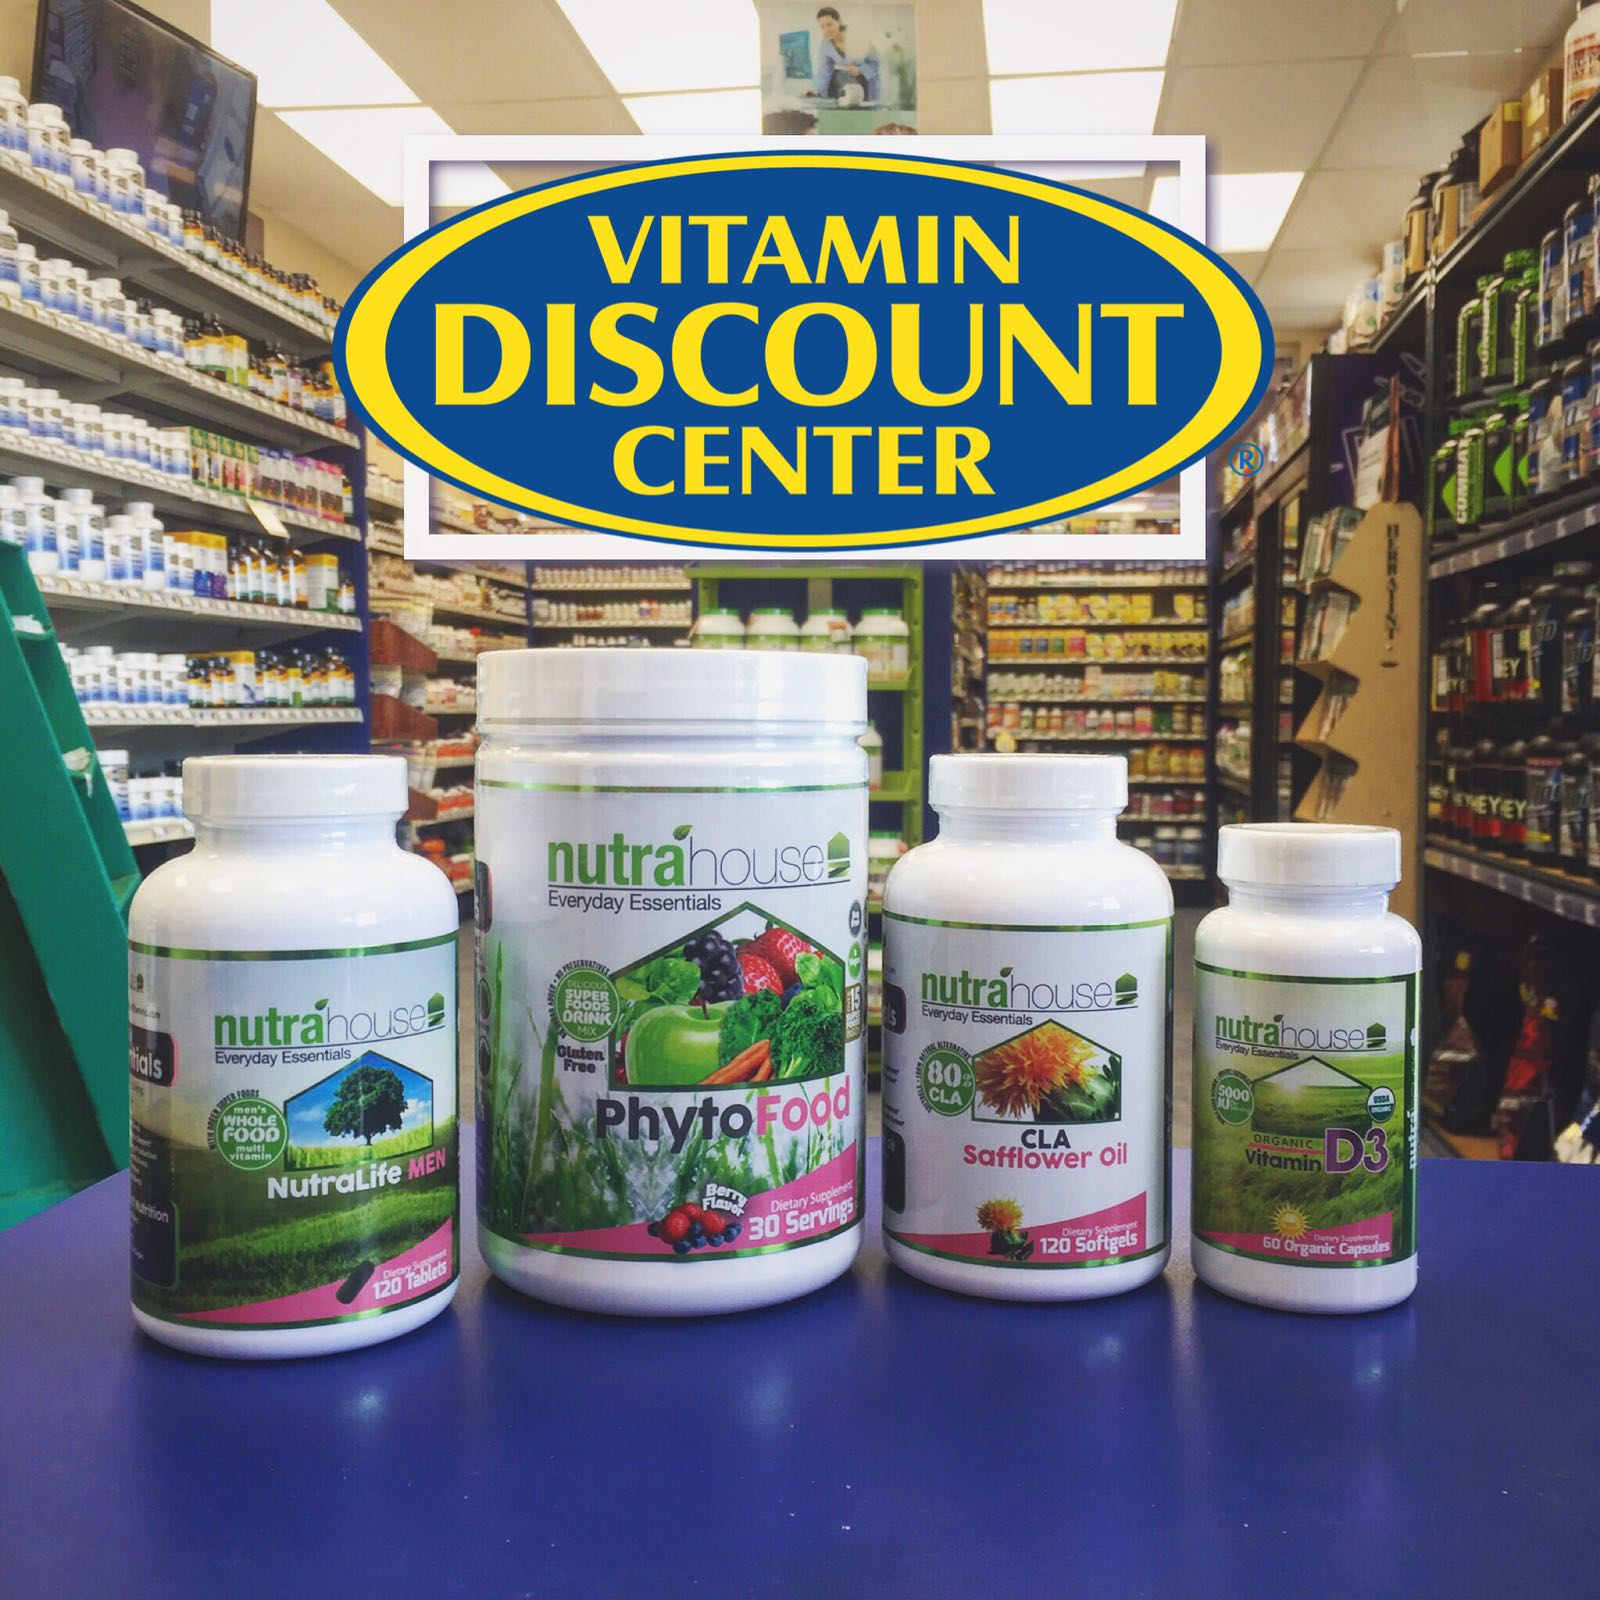 Vitamin discount center health stores in tampa bay for Michaels craft store tampa